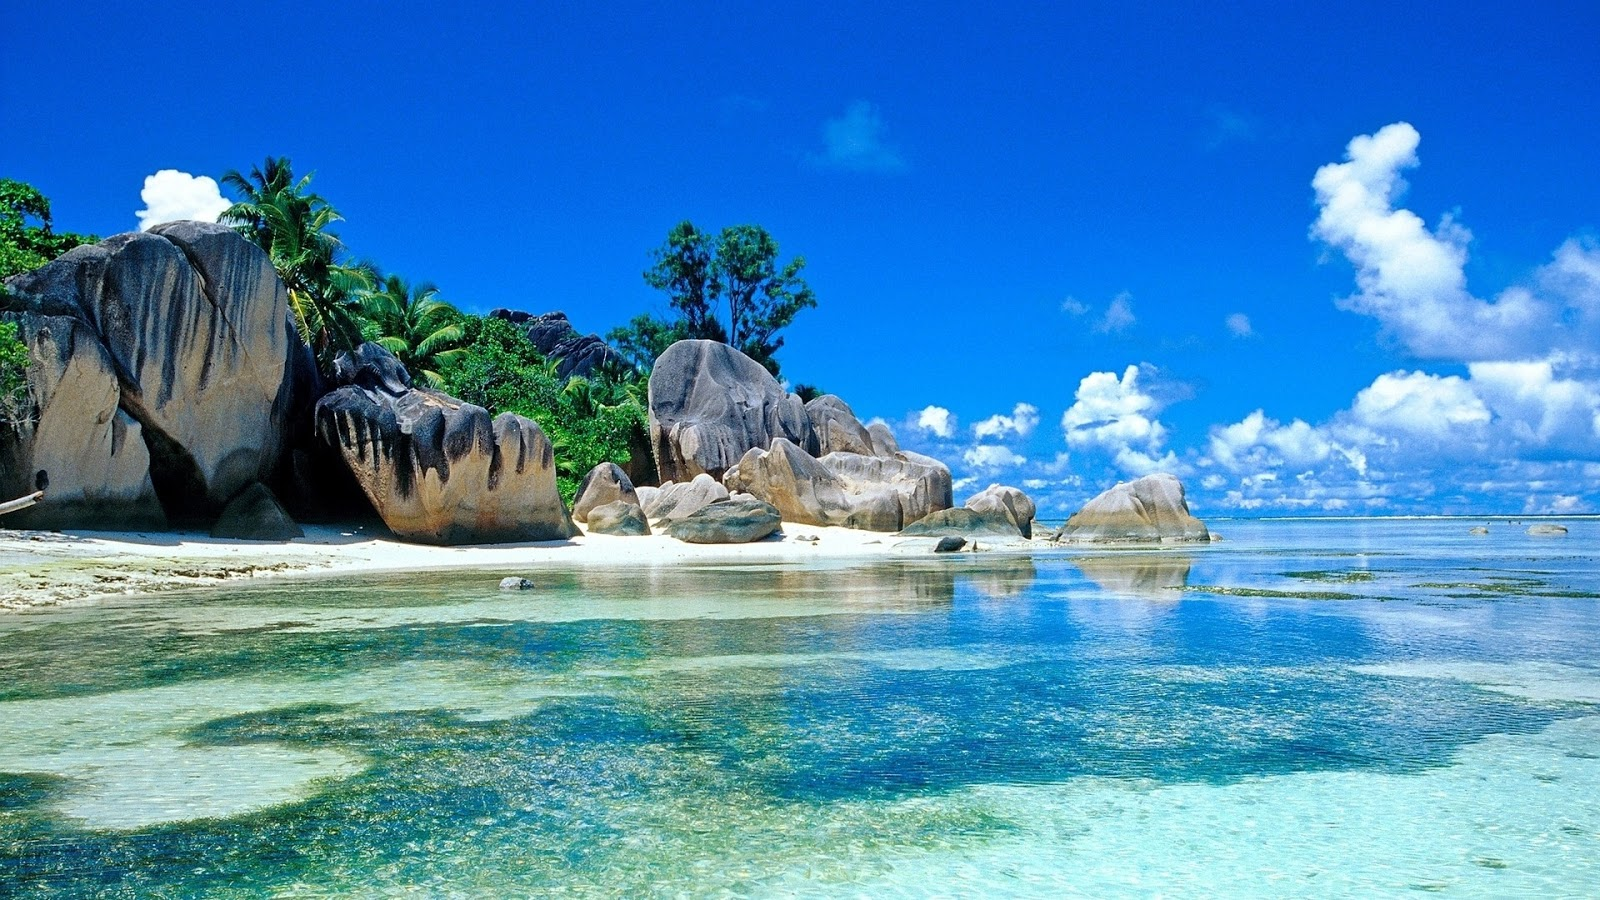 Paradise Island Full HD Desktop Wallpapers 1080p 1600x900